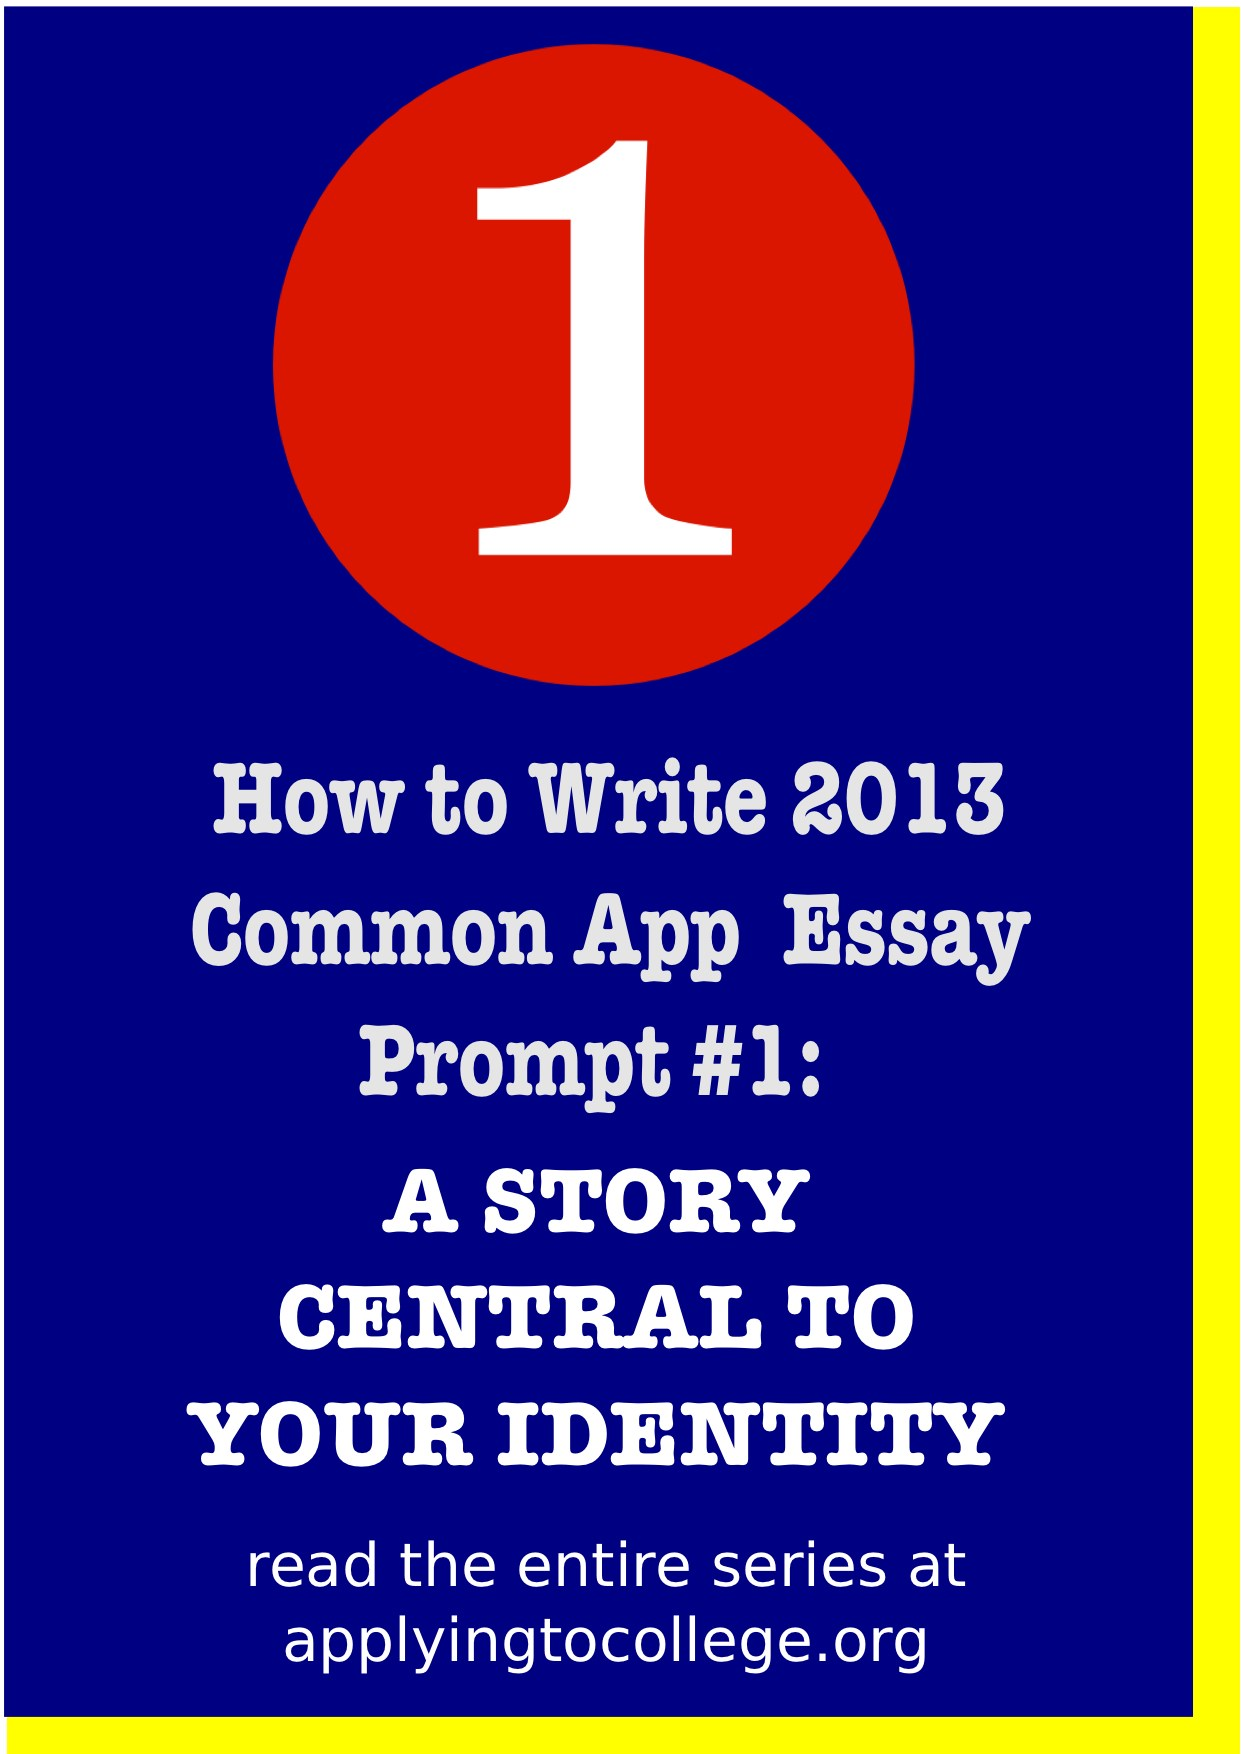 010 How To Write Common App Essay Coalition Application Prompts Frightening Full